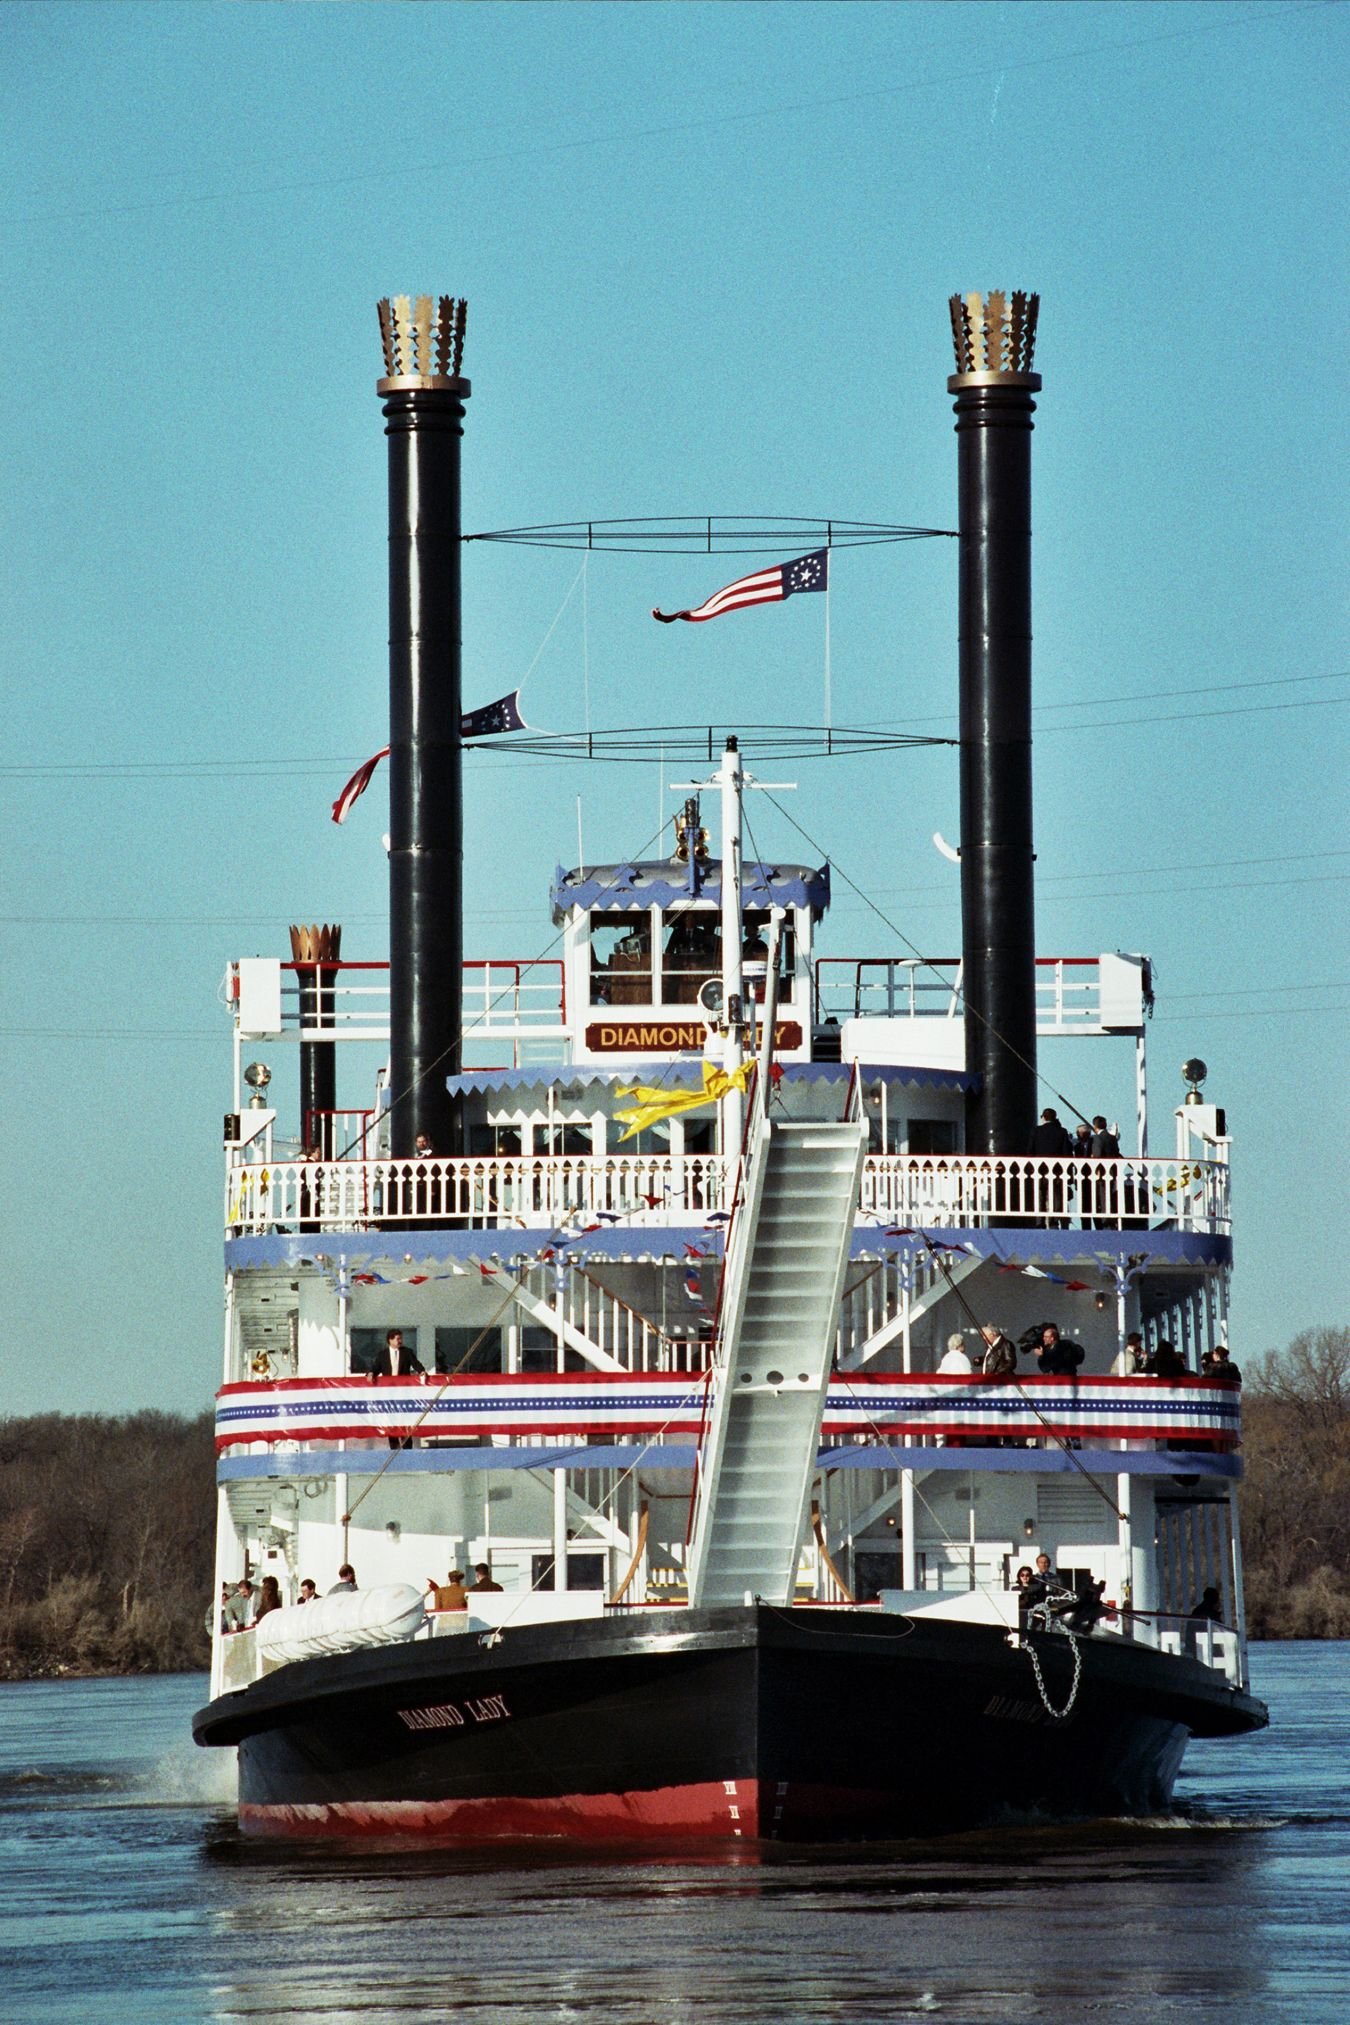 Casino boats in memphis tennessee attractions